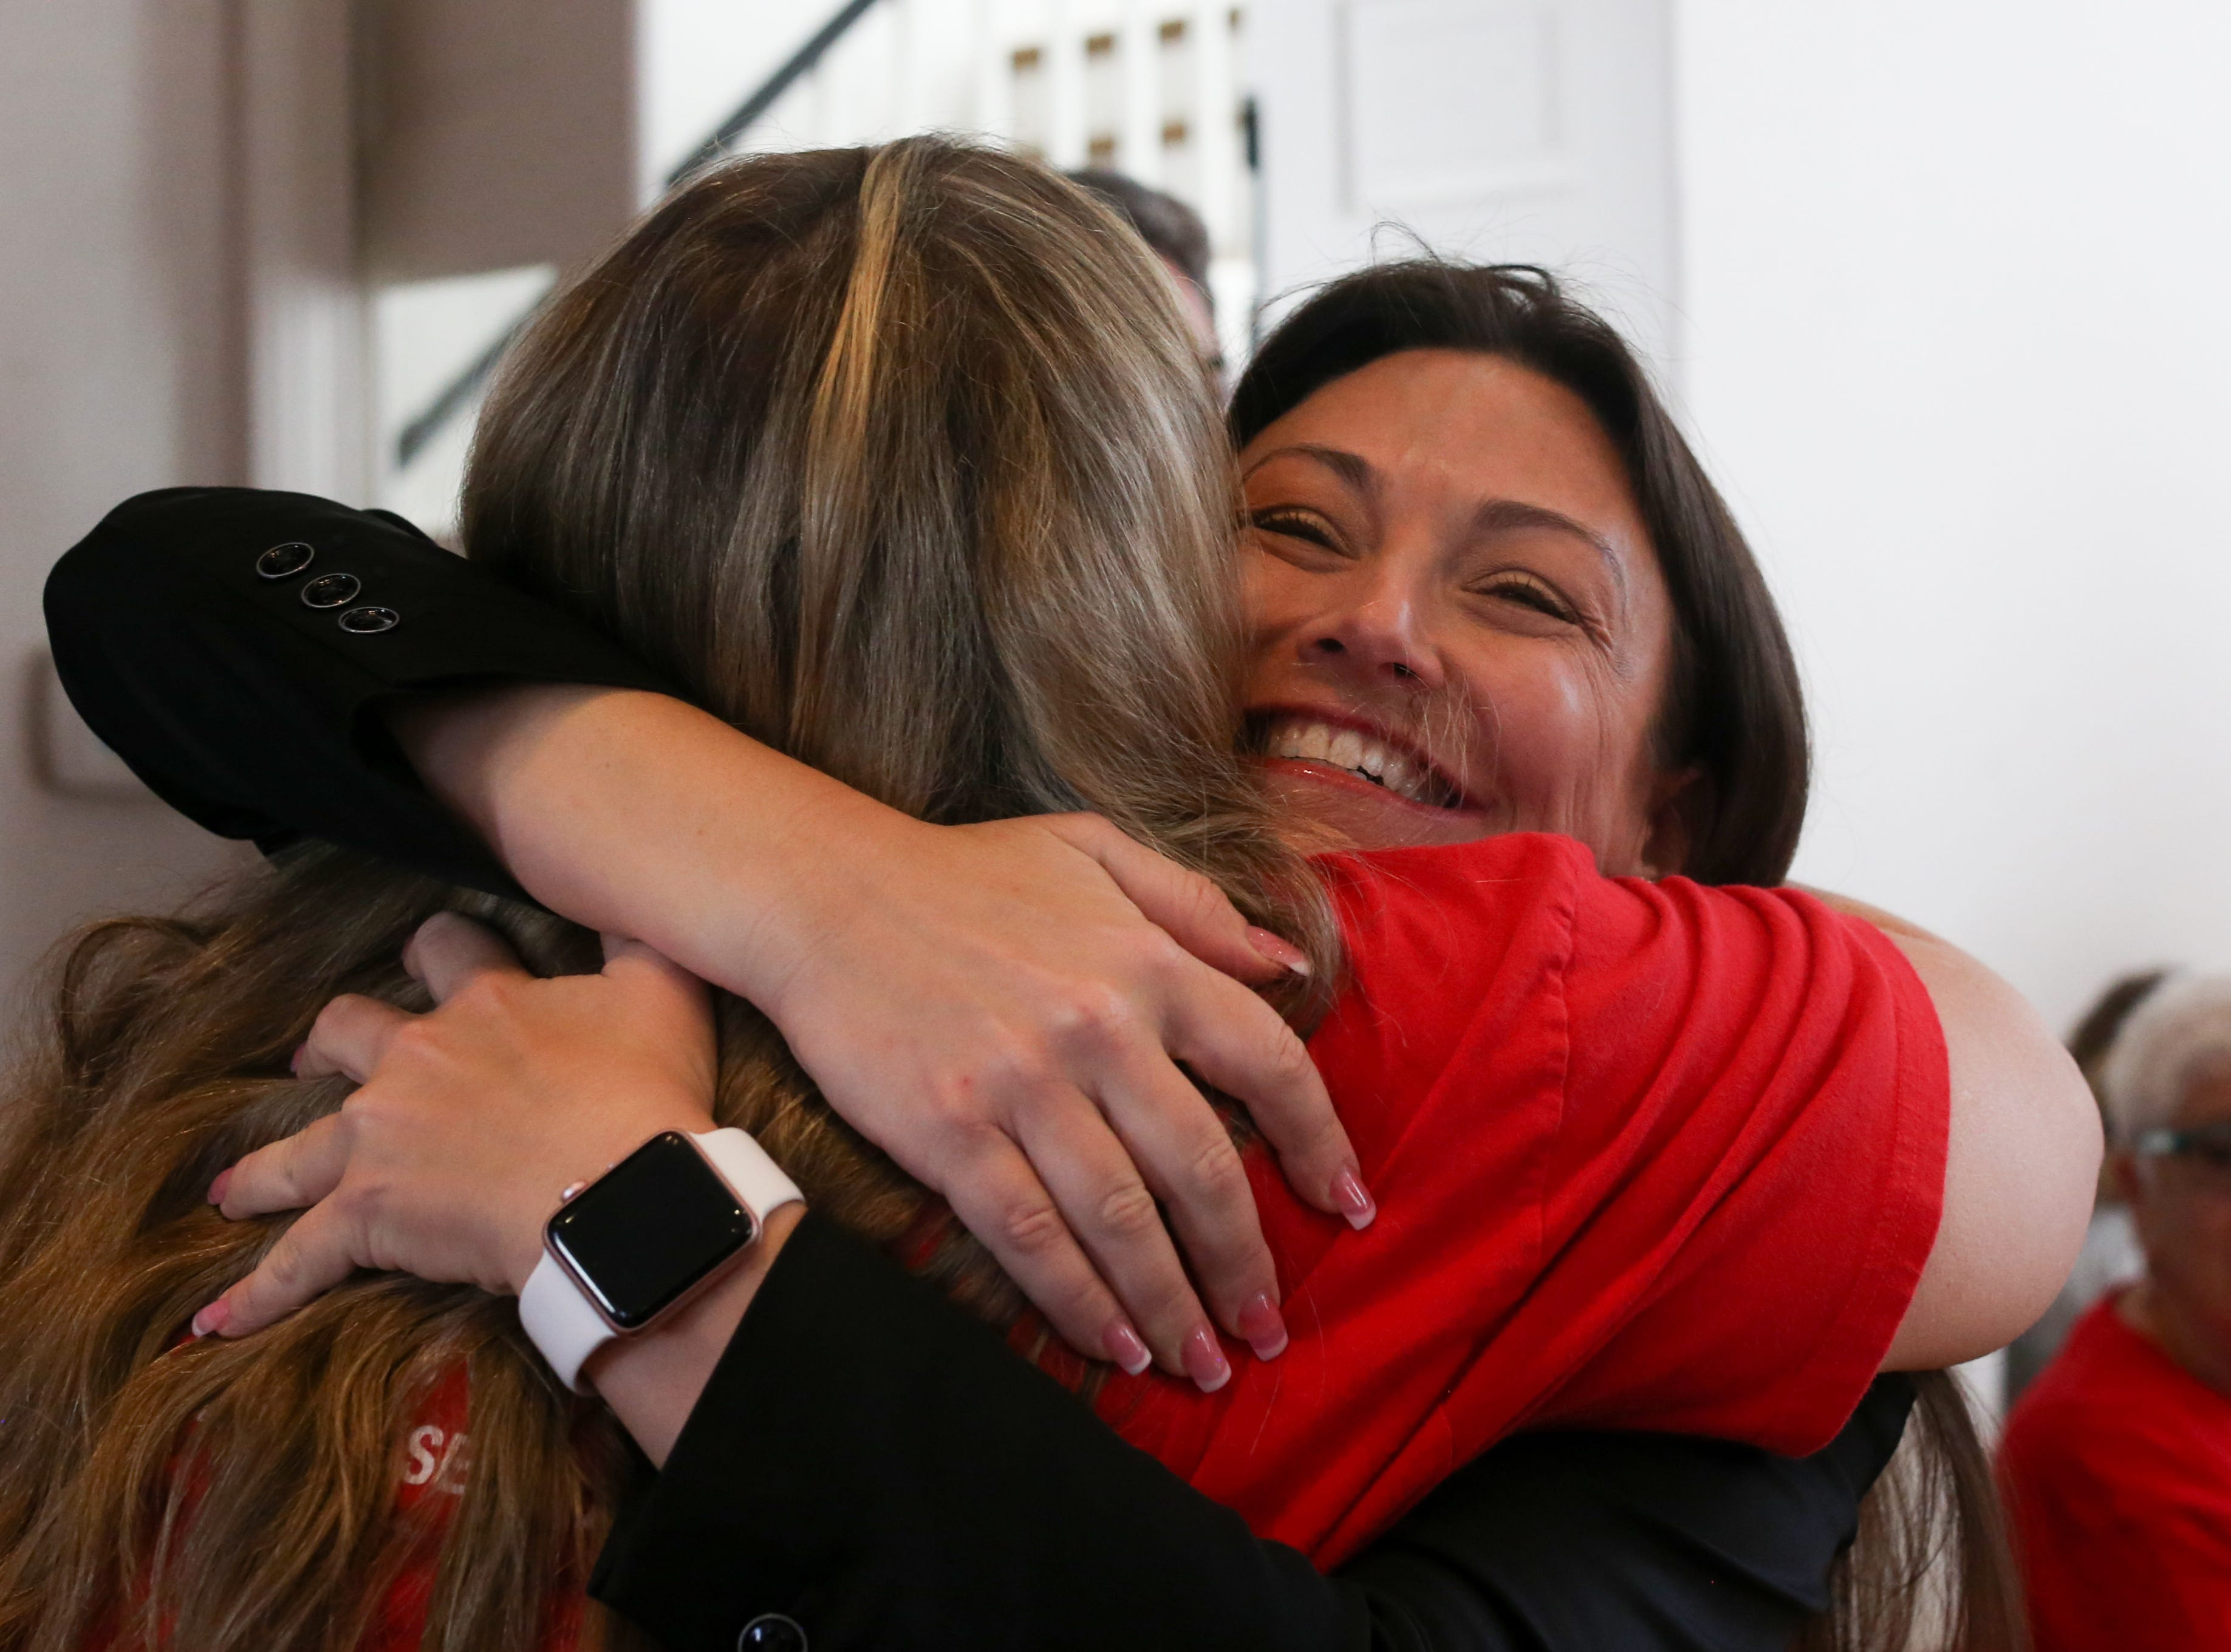 Agriculture Commissioner Nikki Fried hugs very excited Tracy Merlin, a Broward County teacher, as Fried enters First Presbyterian Church where Merlin and over 500 other members of Moms Demand Action gathered before descending on the Capitol to meet with lawmakers to lobby for stricter gun laws in Florida.